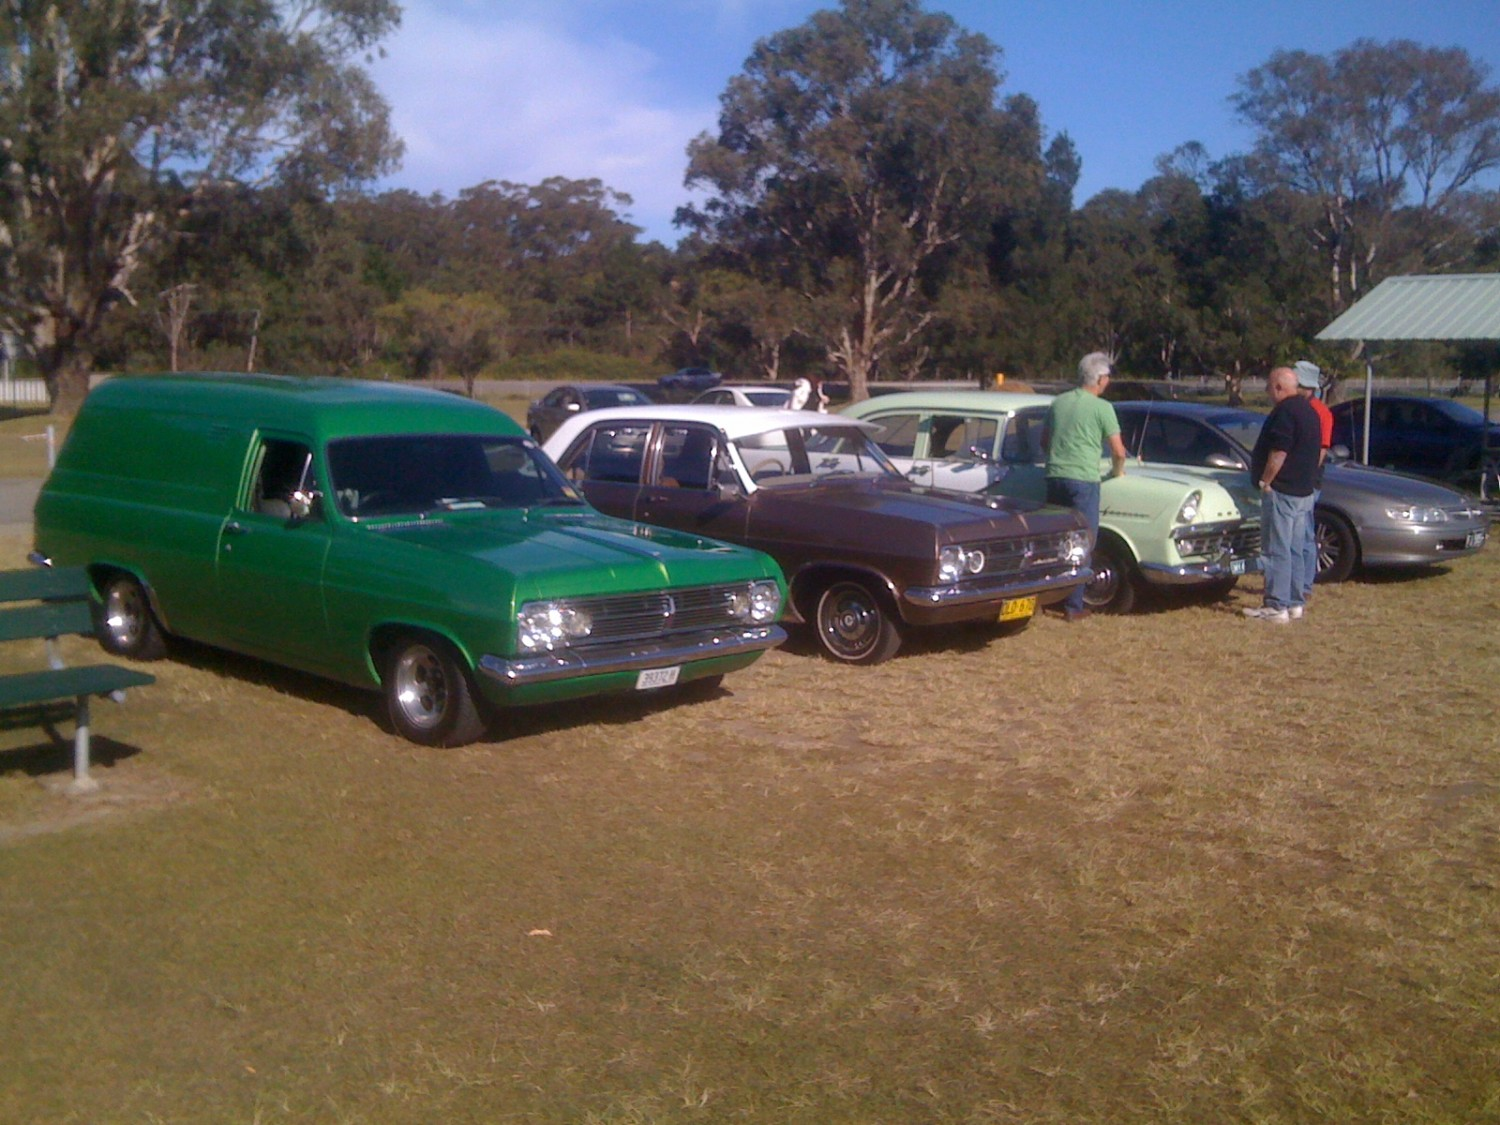 ,Holden,1966,186,1966 Holden HR,figjam5309,Other,HR,CELECIA 5 SPEED,Holden HR